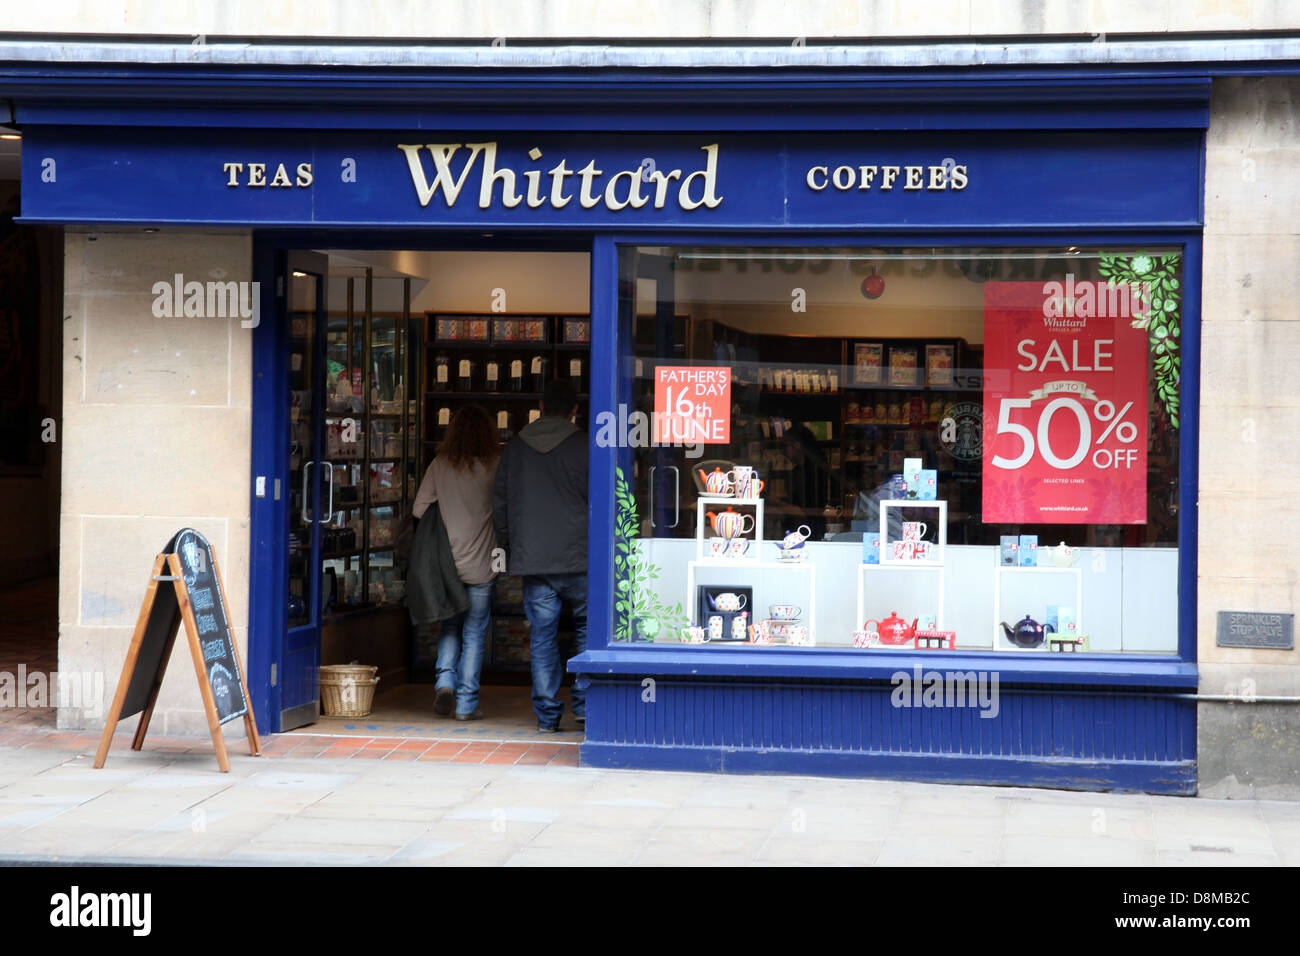 Whittard High Street Teas and Coffees shop. - Stock Image